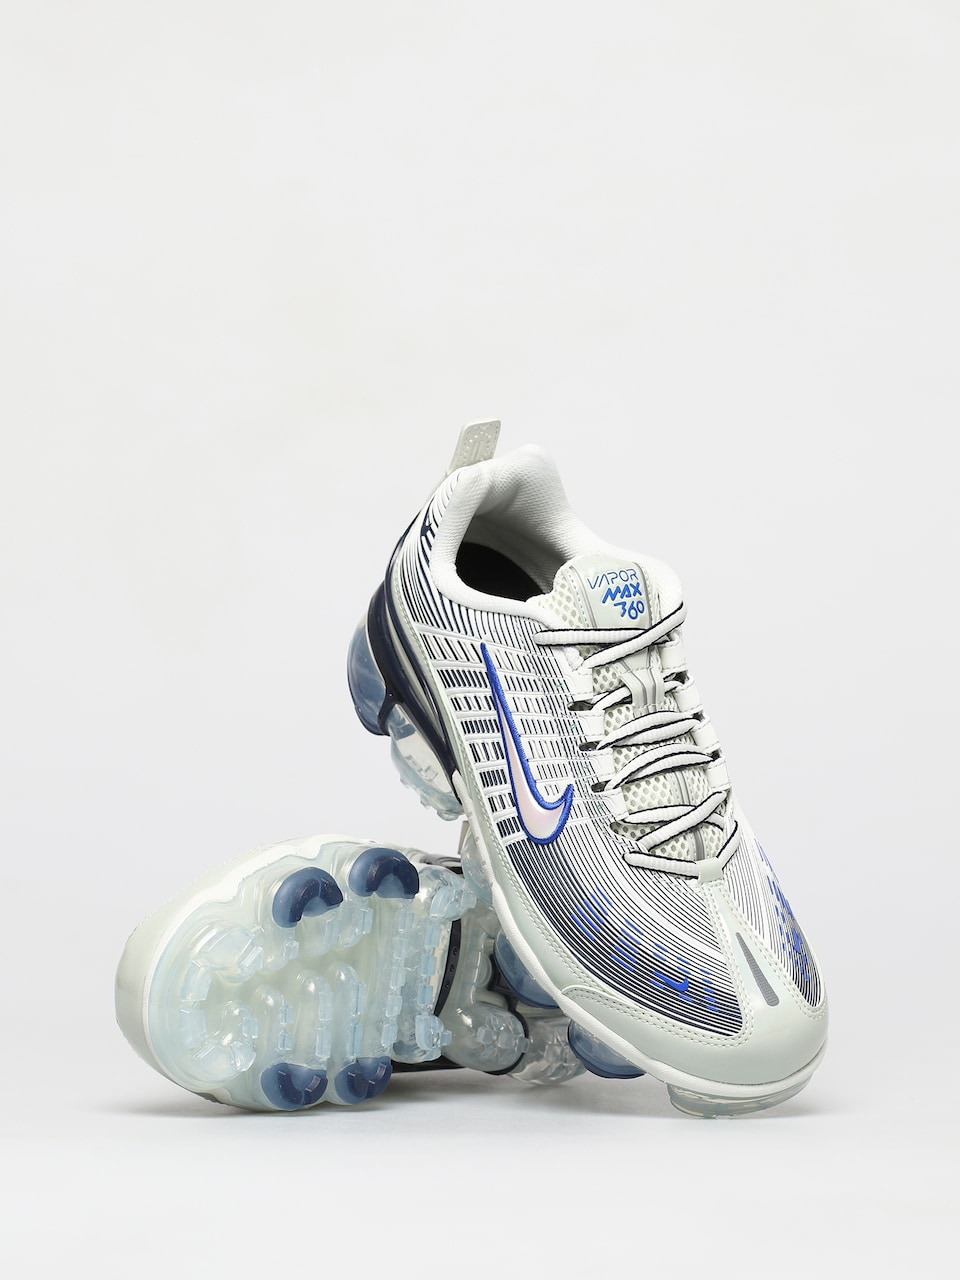 Nike Air Vapormax 360 Shoes (spruce